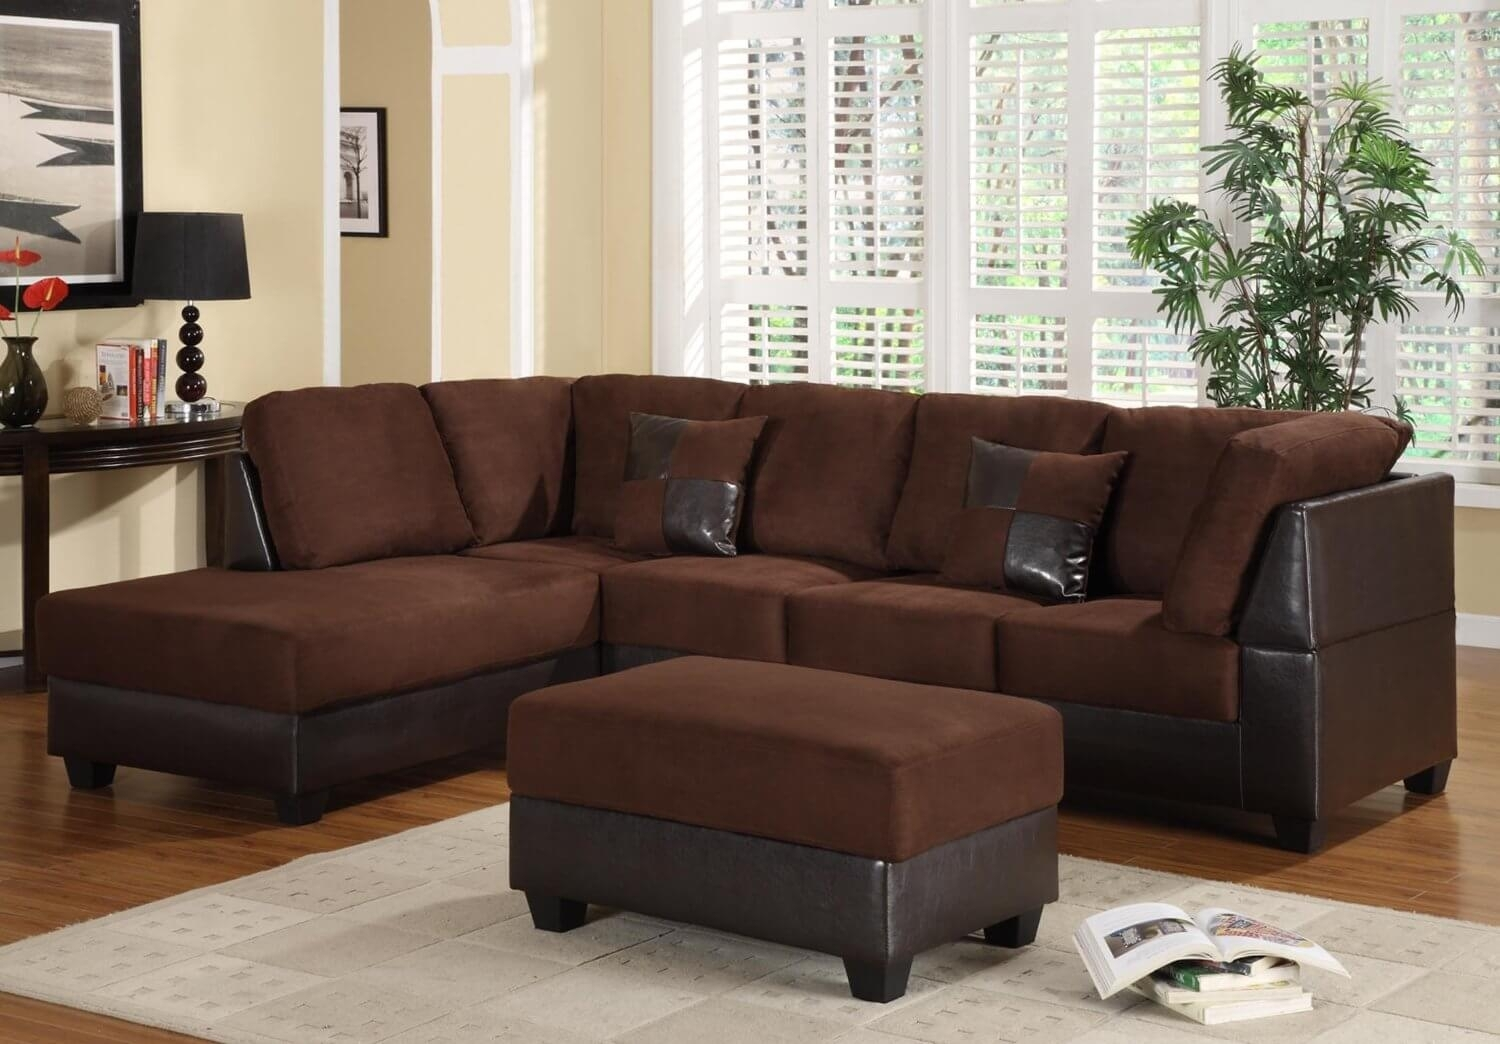 40 Cheap Sectional Sofas Under $500 For 2018 Throughout Sectional Sofas Under (View 6 of 10)